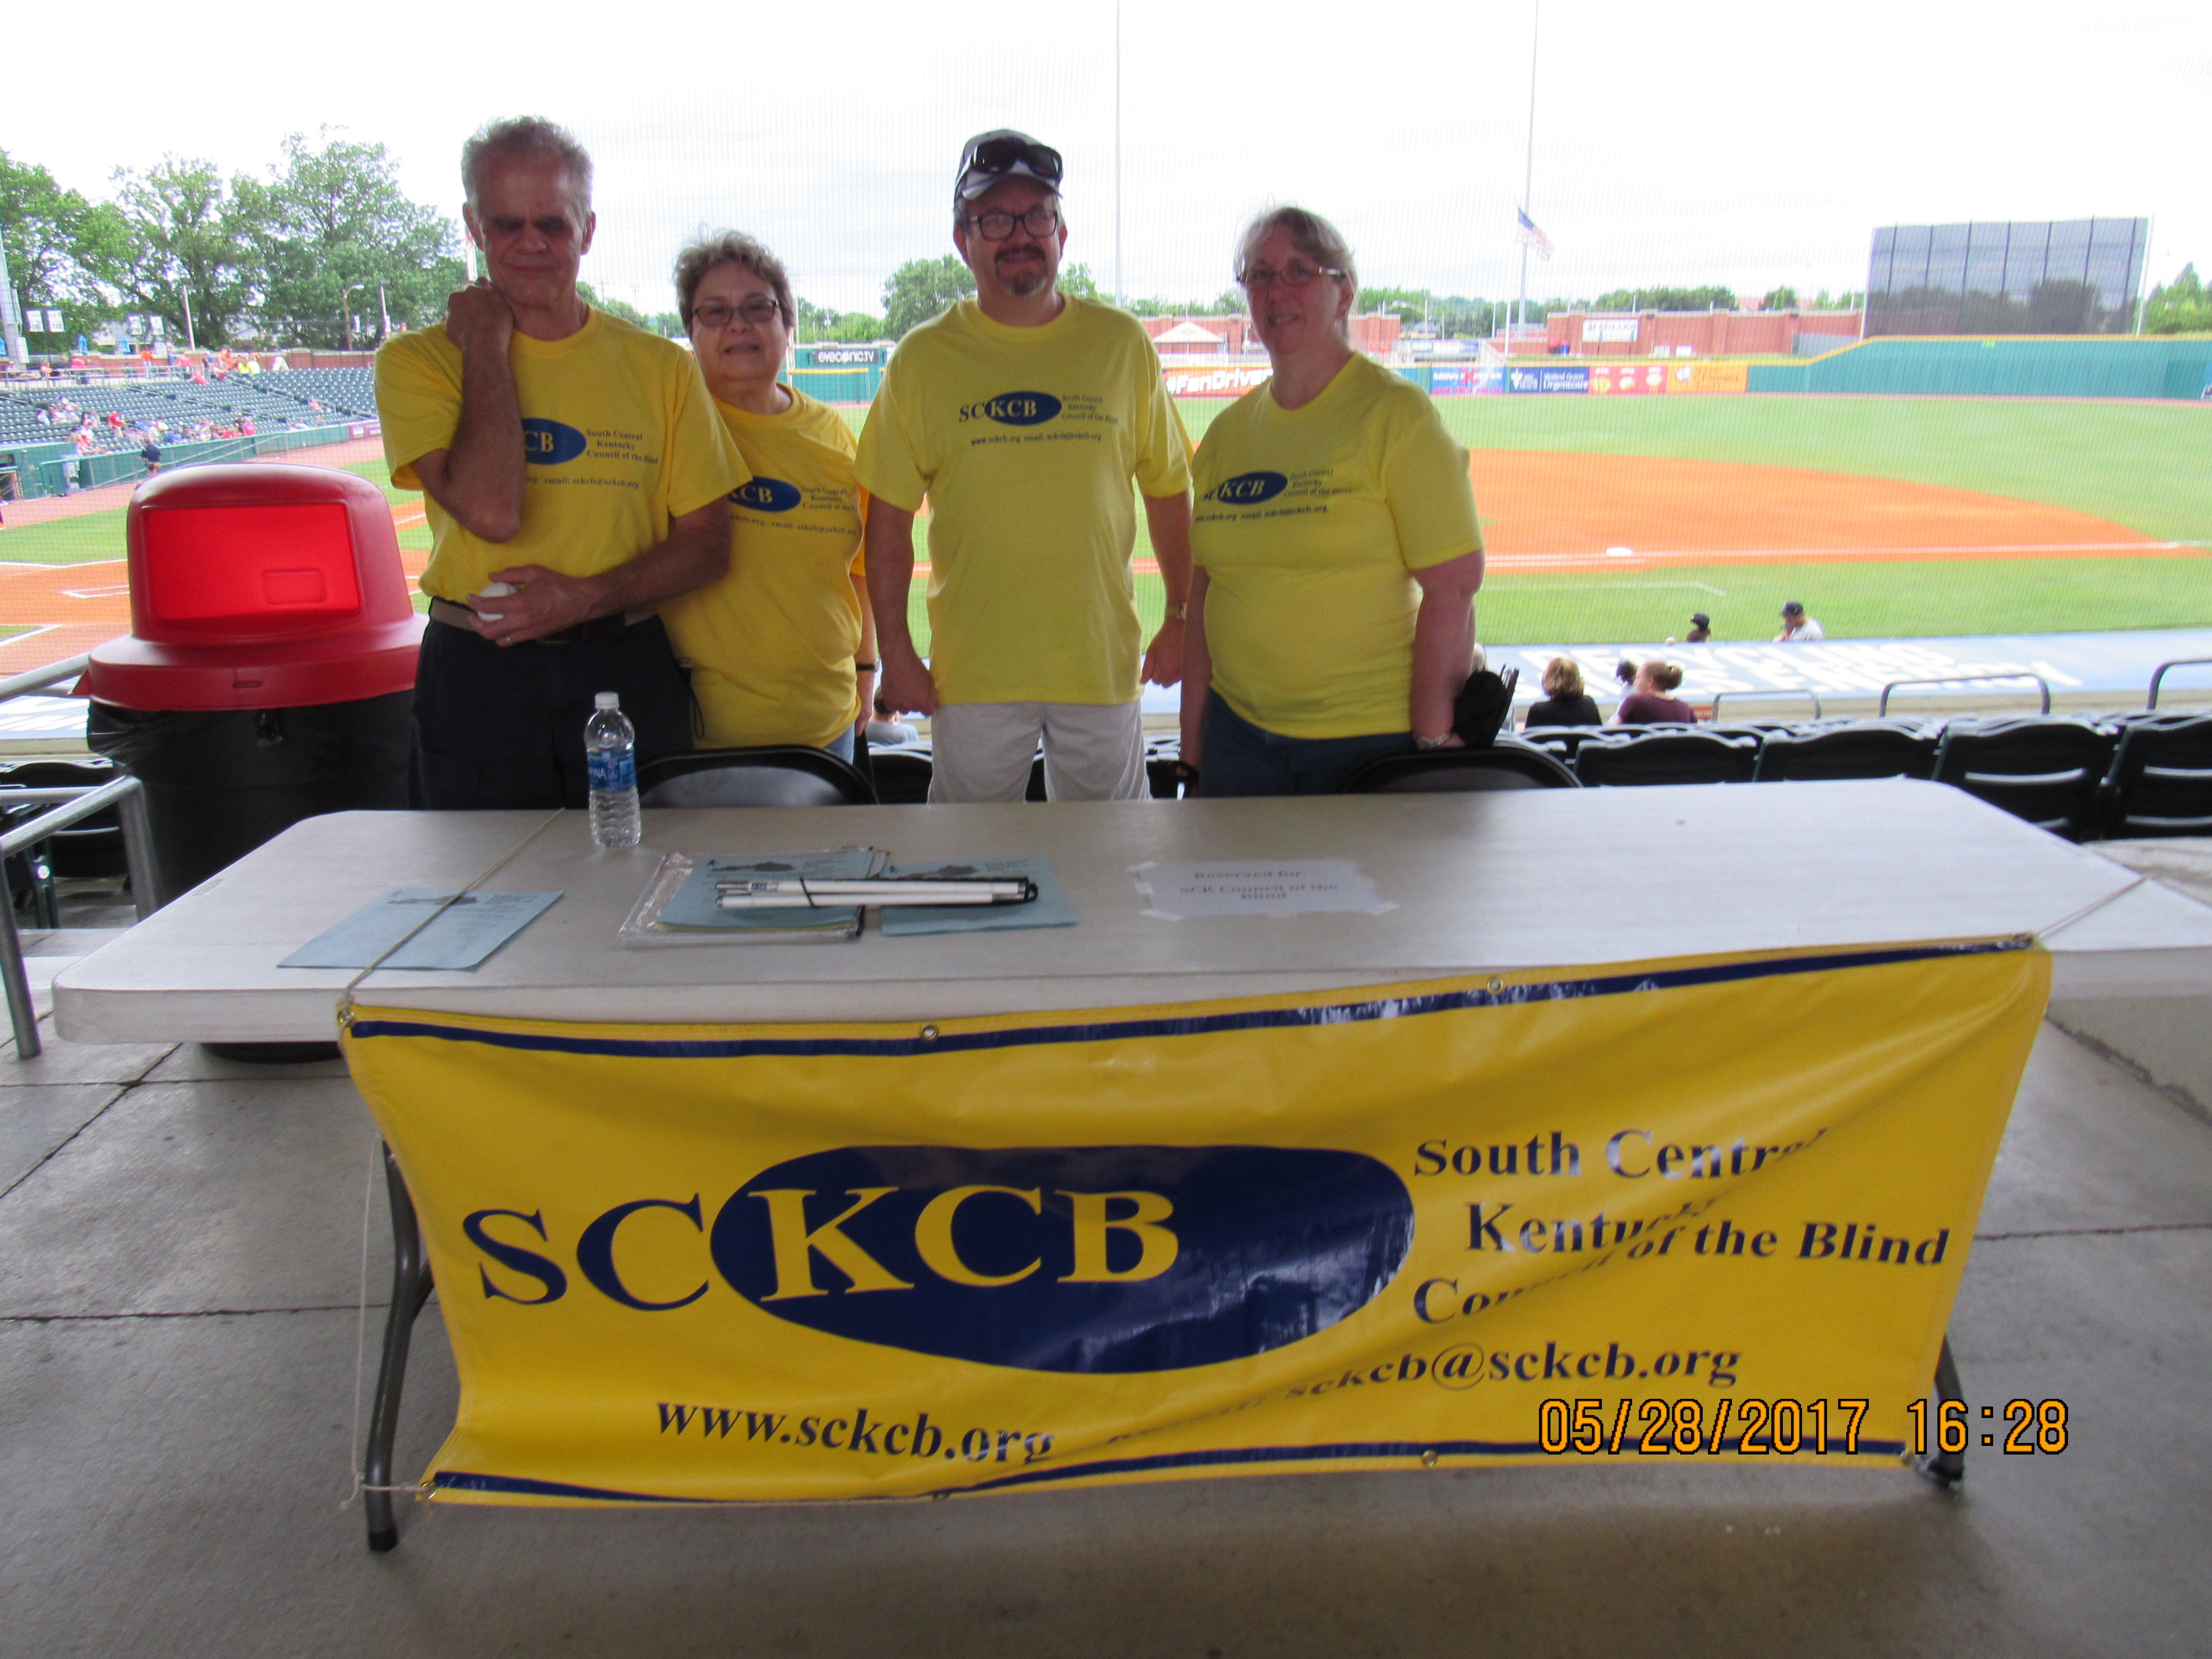 Picture of SCKCB table at the ballgame